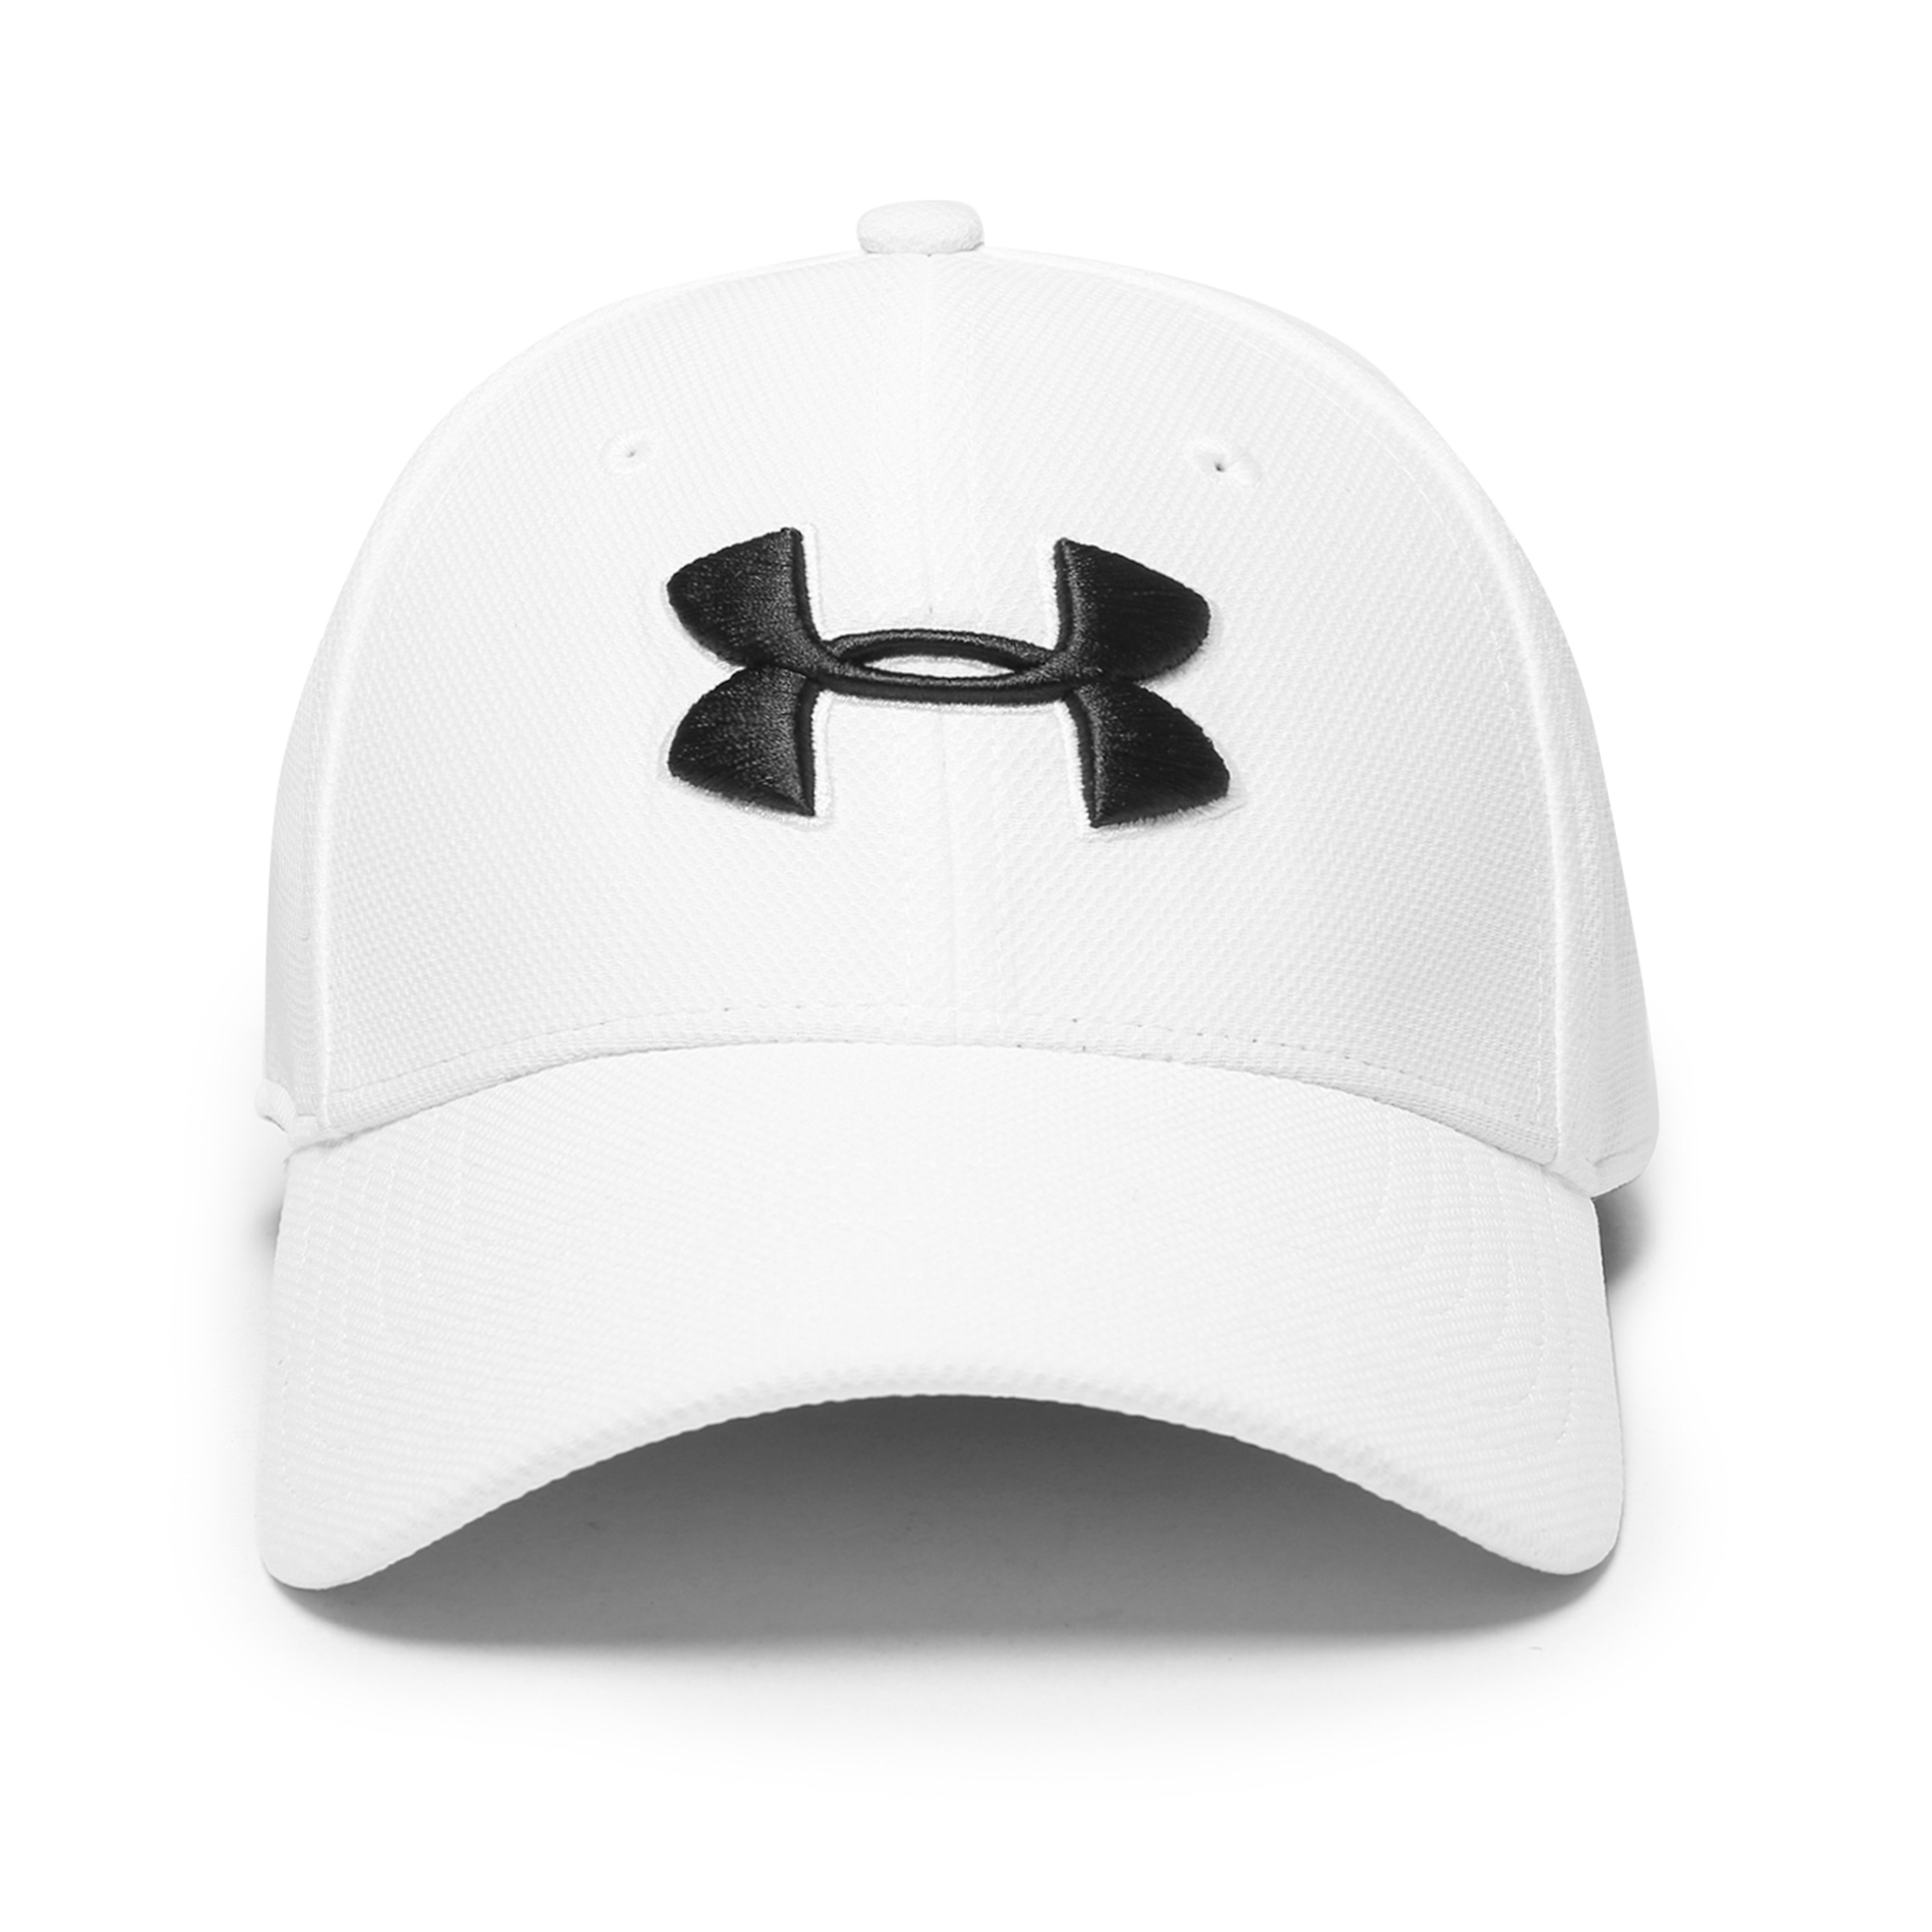 Under Armour Blitzing 3.0 Men's Training Cap